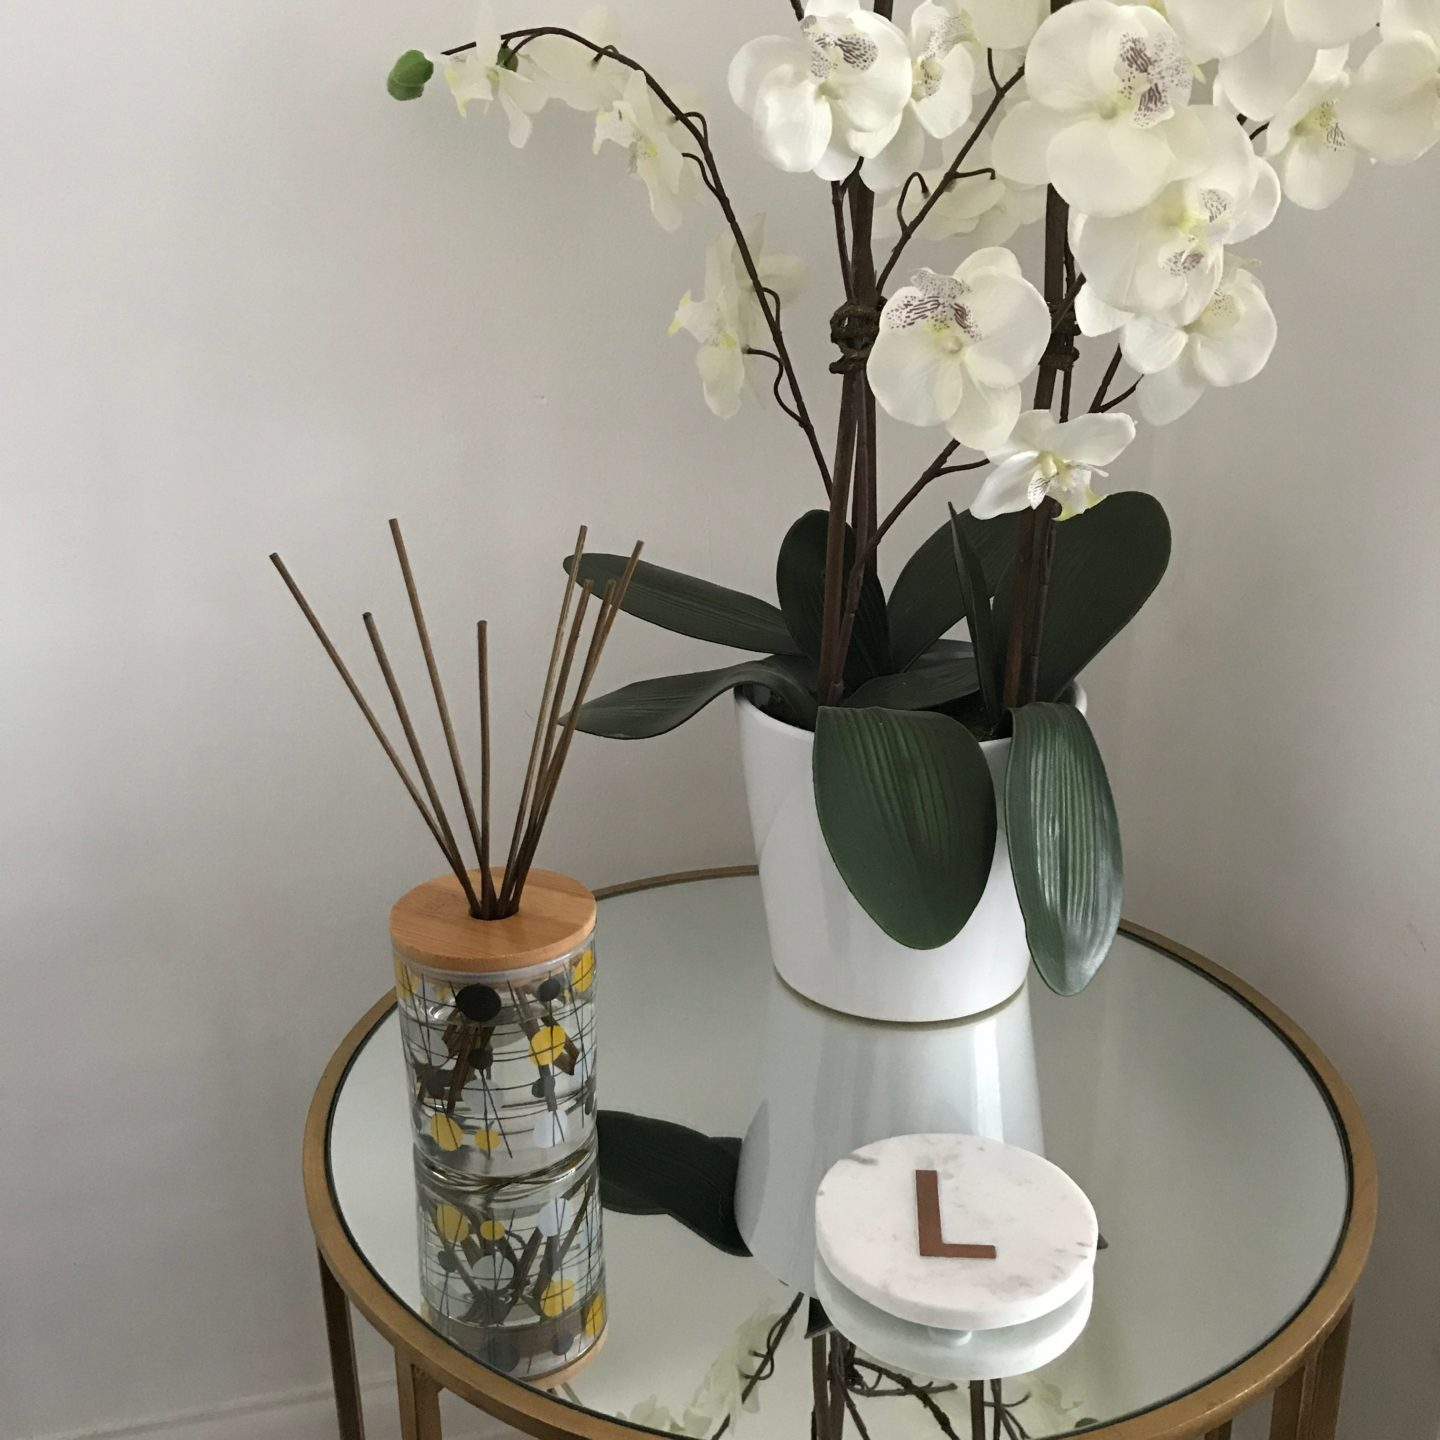 Mini Moderns Pavilion Diffuser